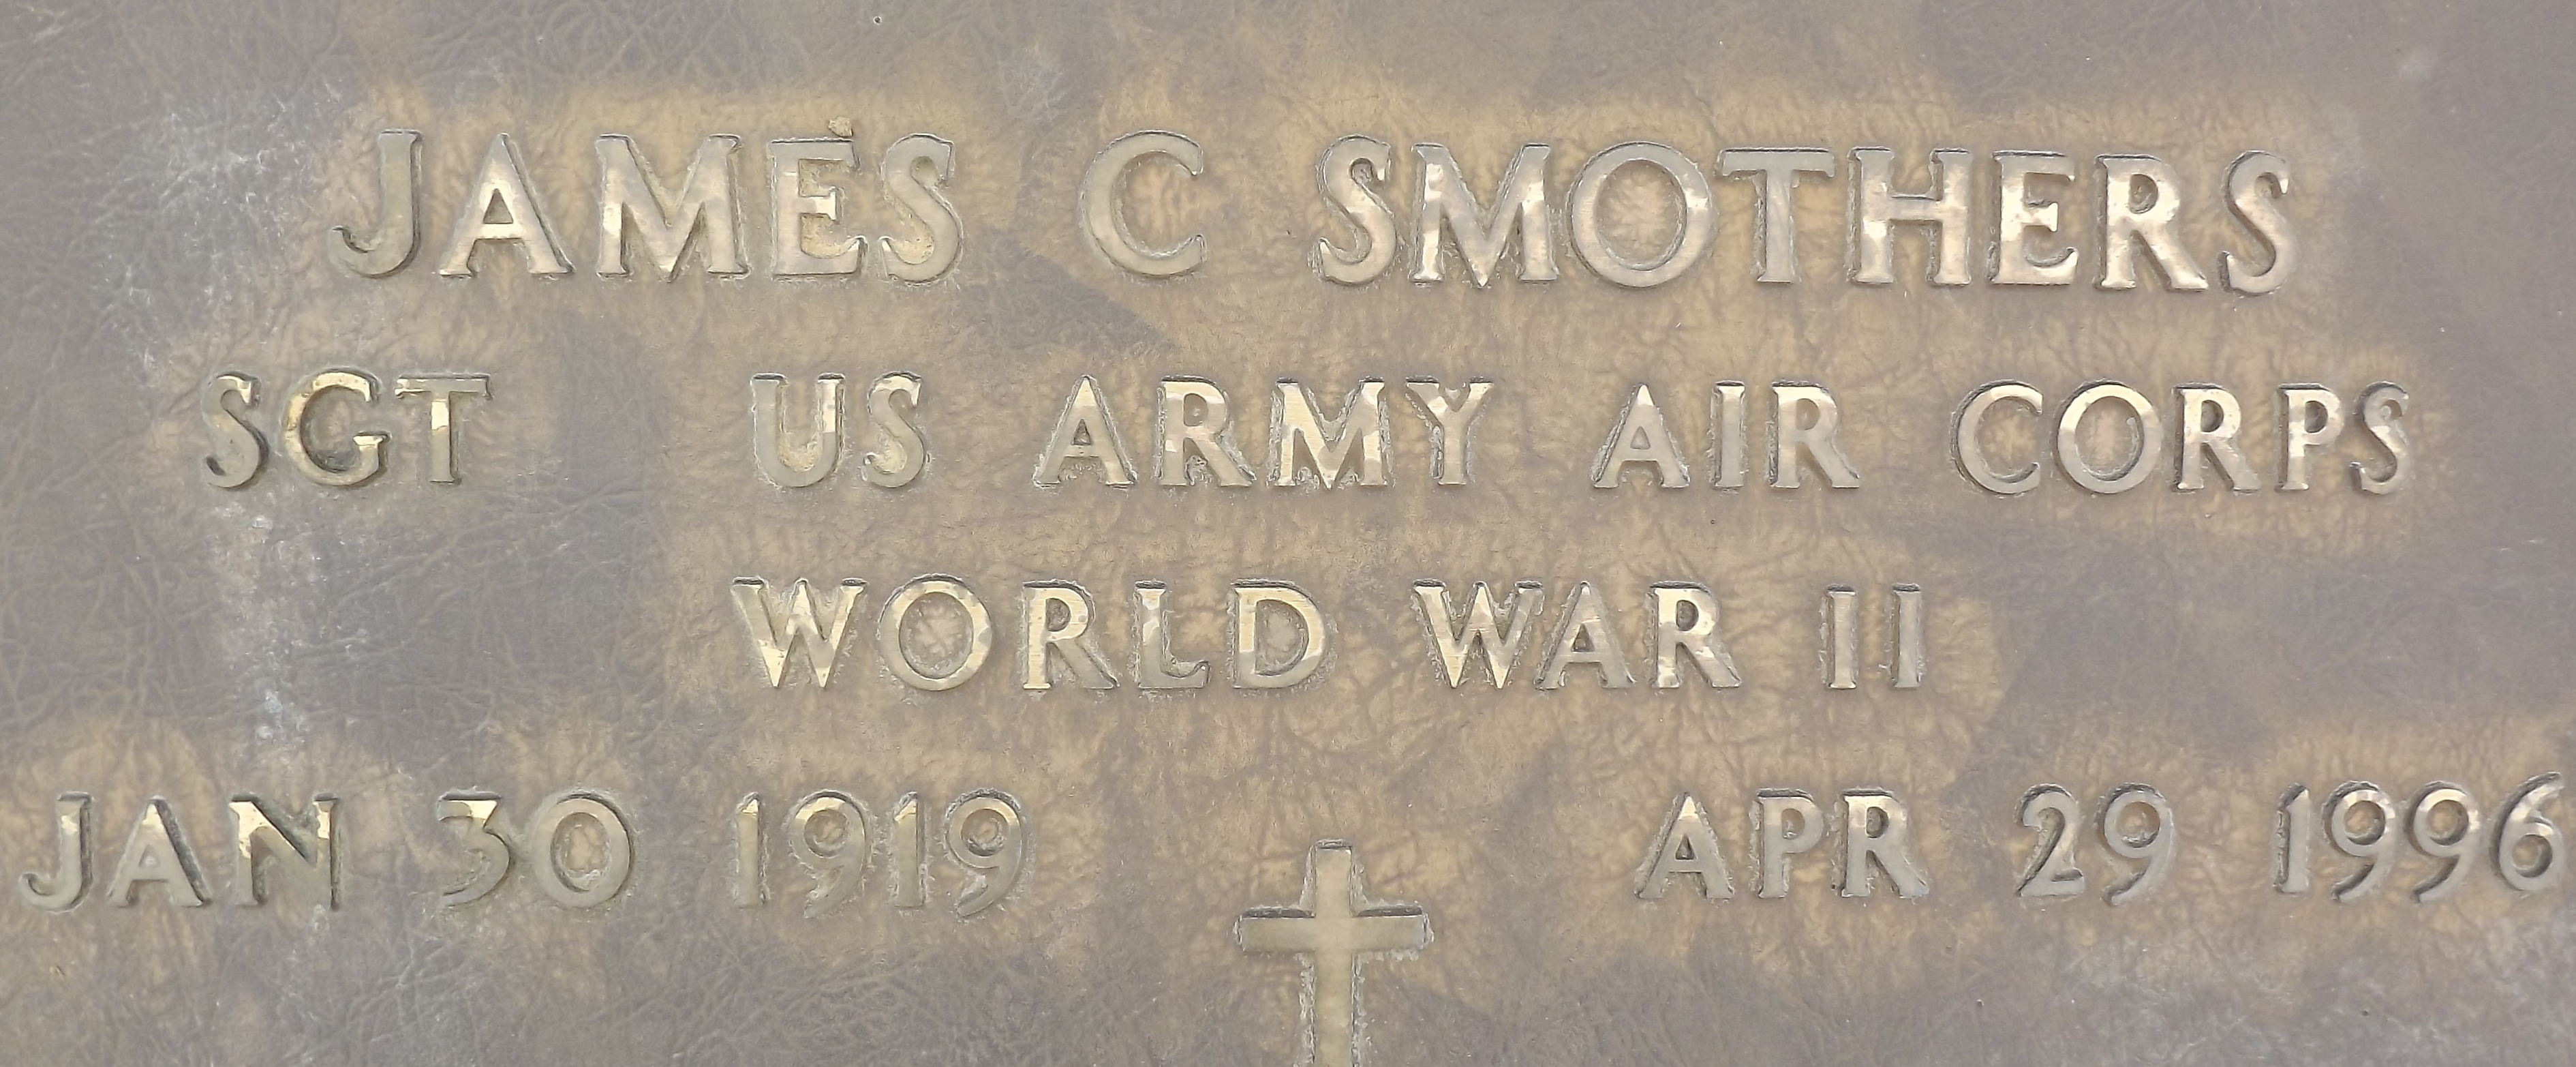 James C. Smothers